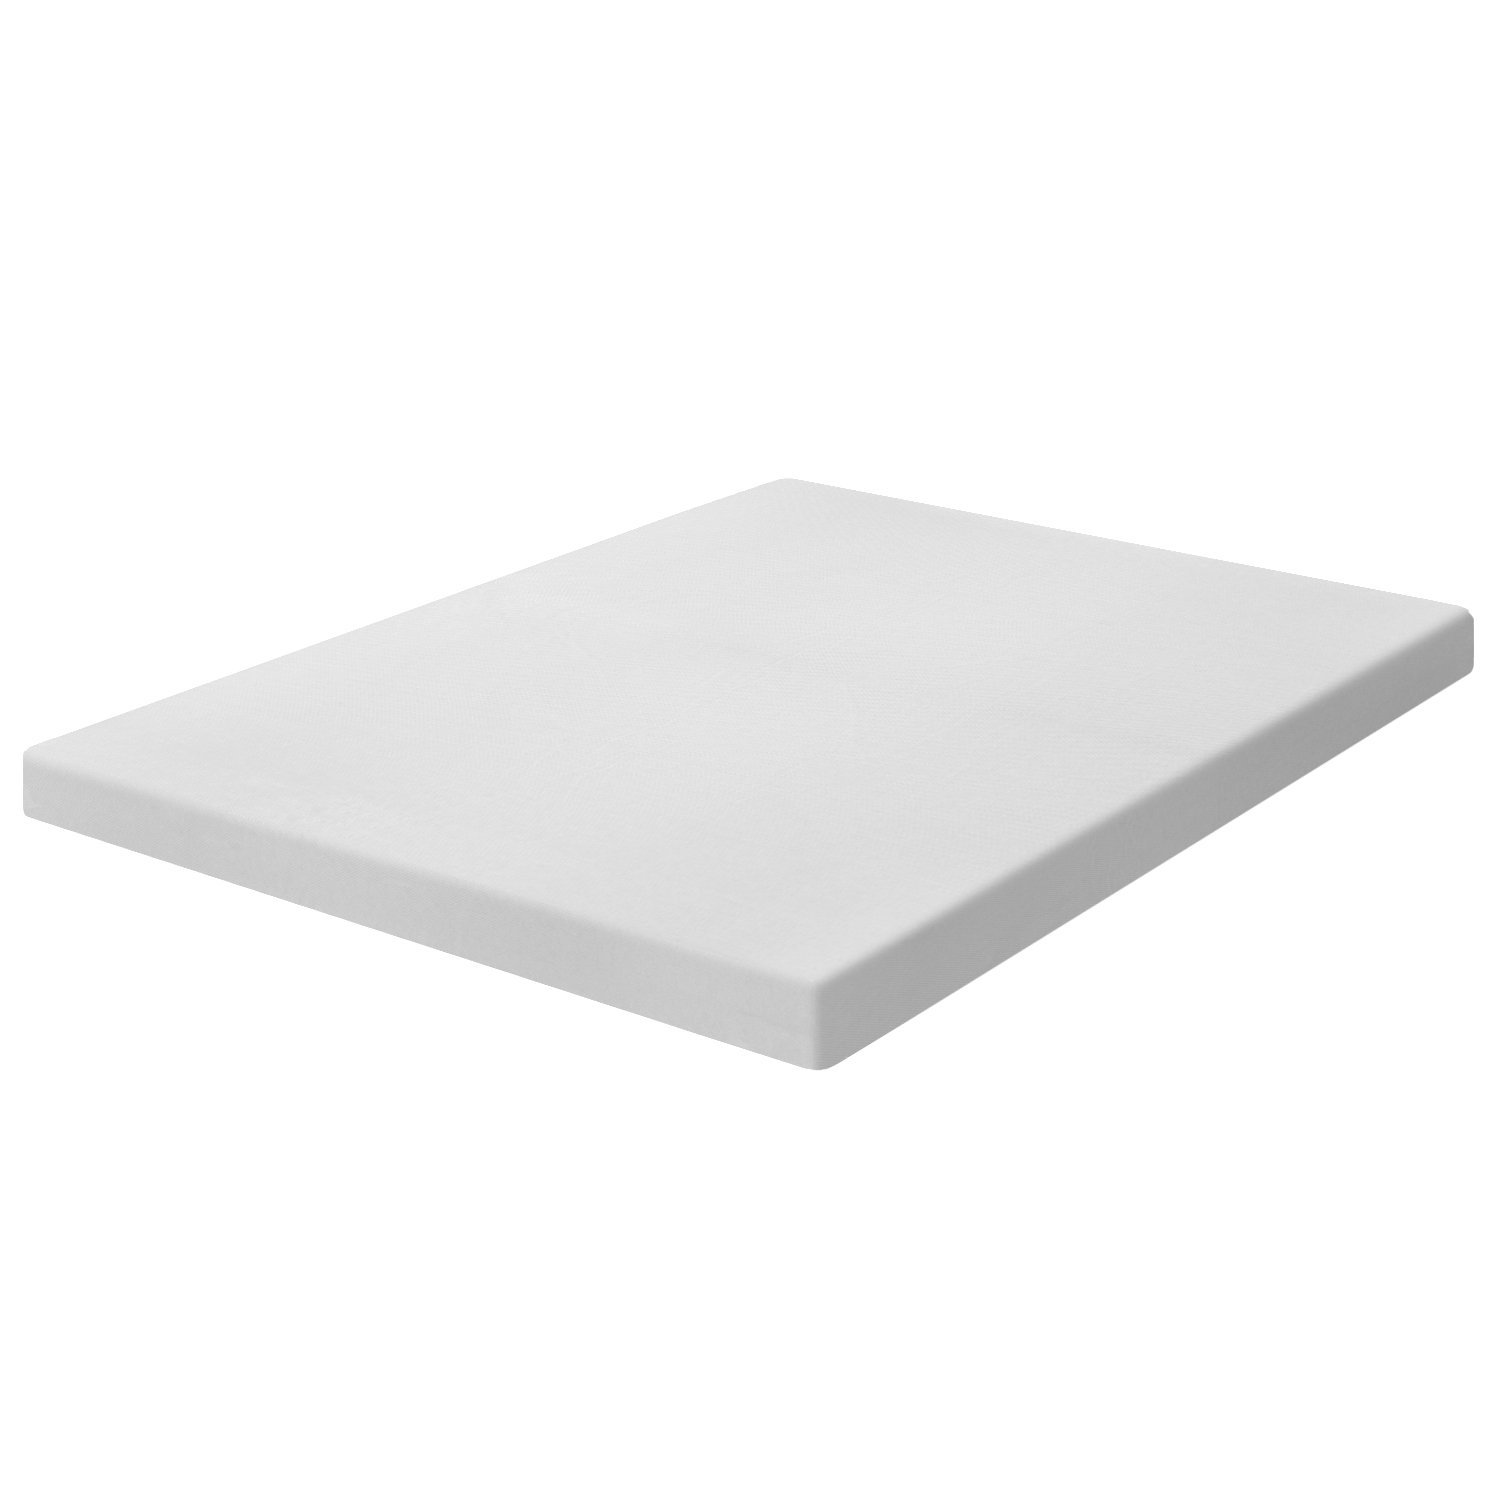 Sleep Joy Memory Foam Topper Best Mattress Topper Reviews Top 10 Brands Of 2019